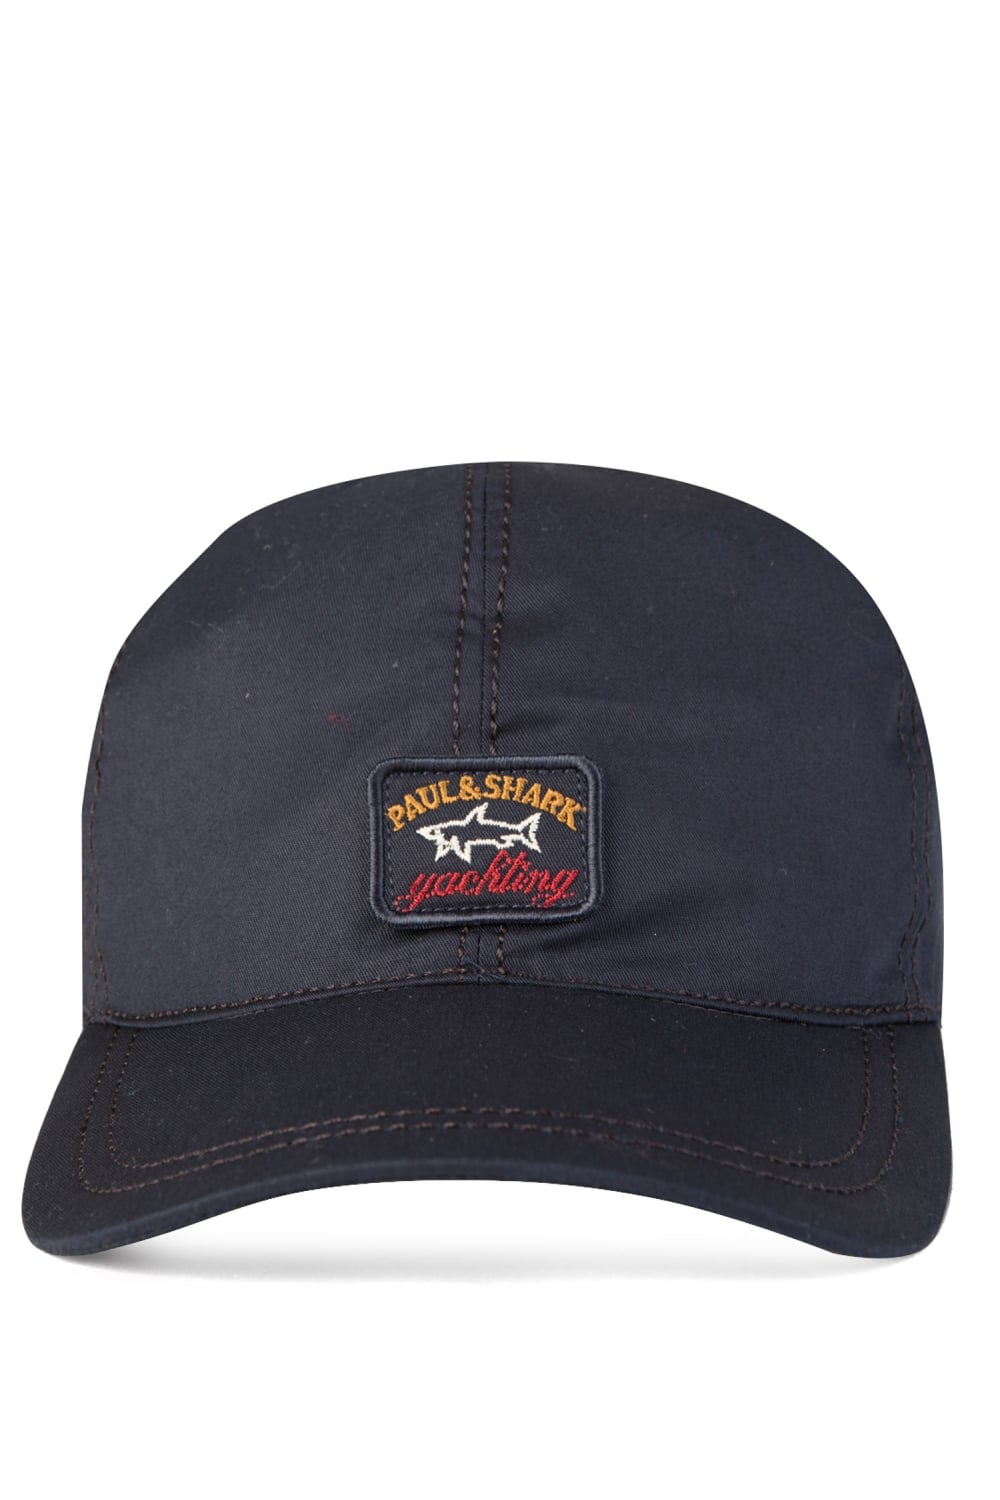 Paul Shark Cap